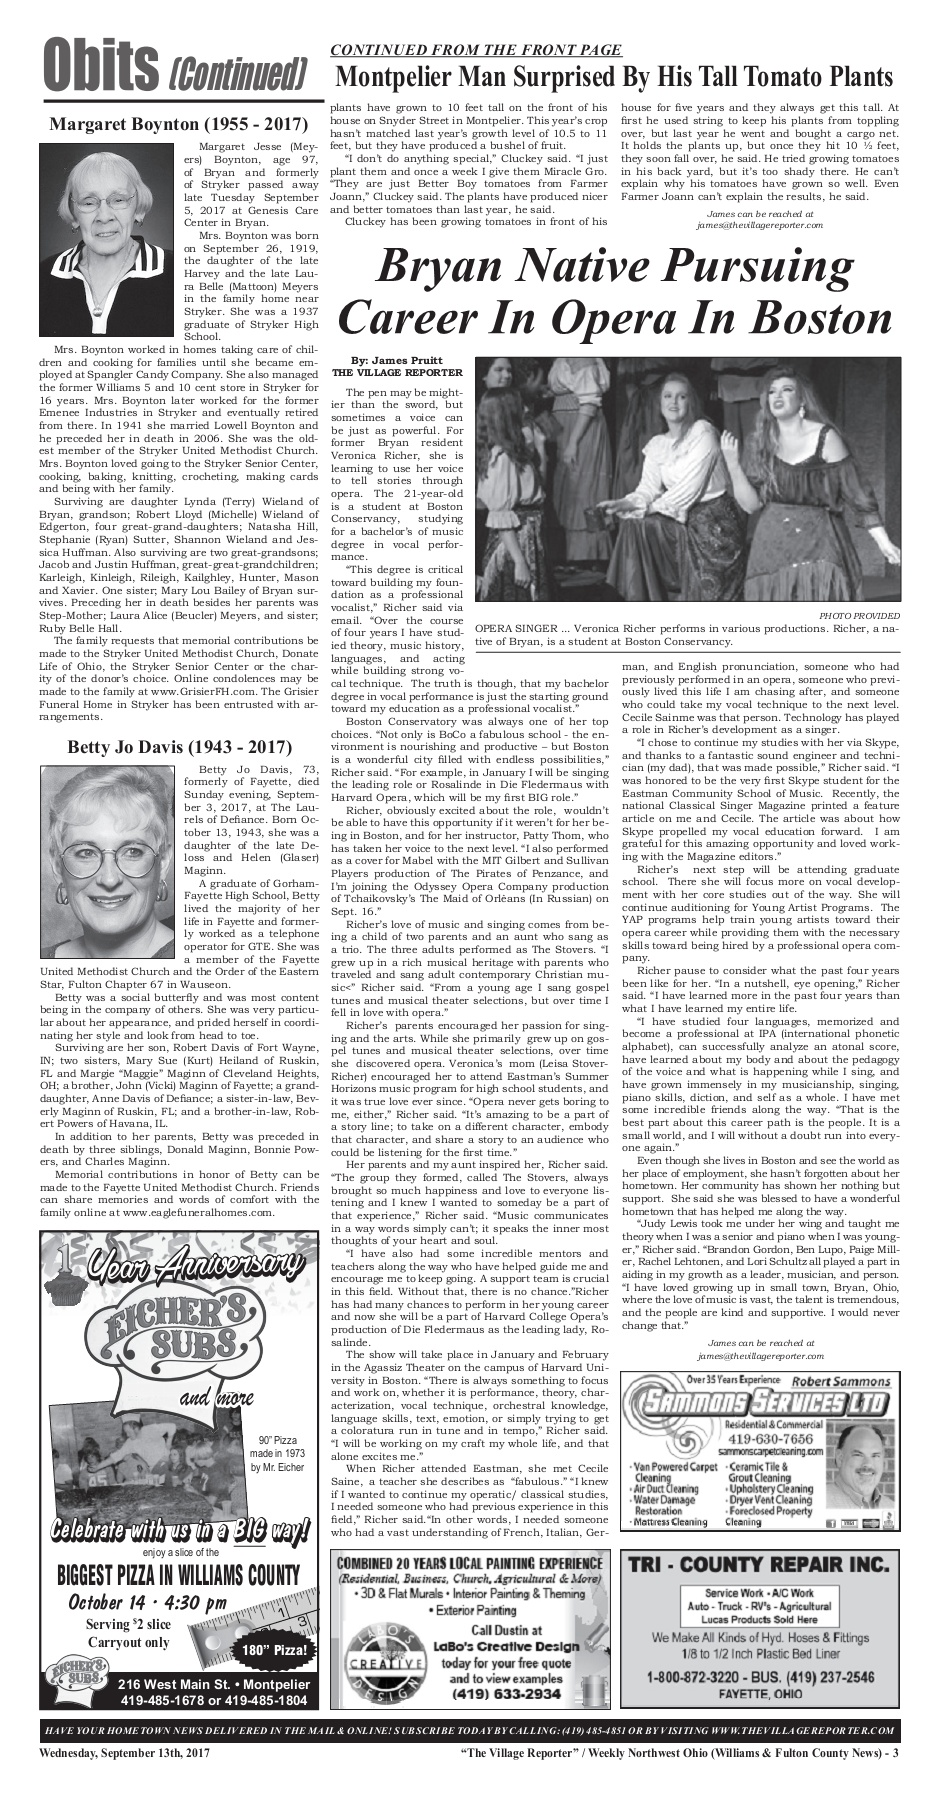 The Village Reporter - September 13th, 2017 Pages 1 - 32